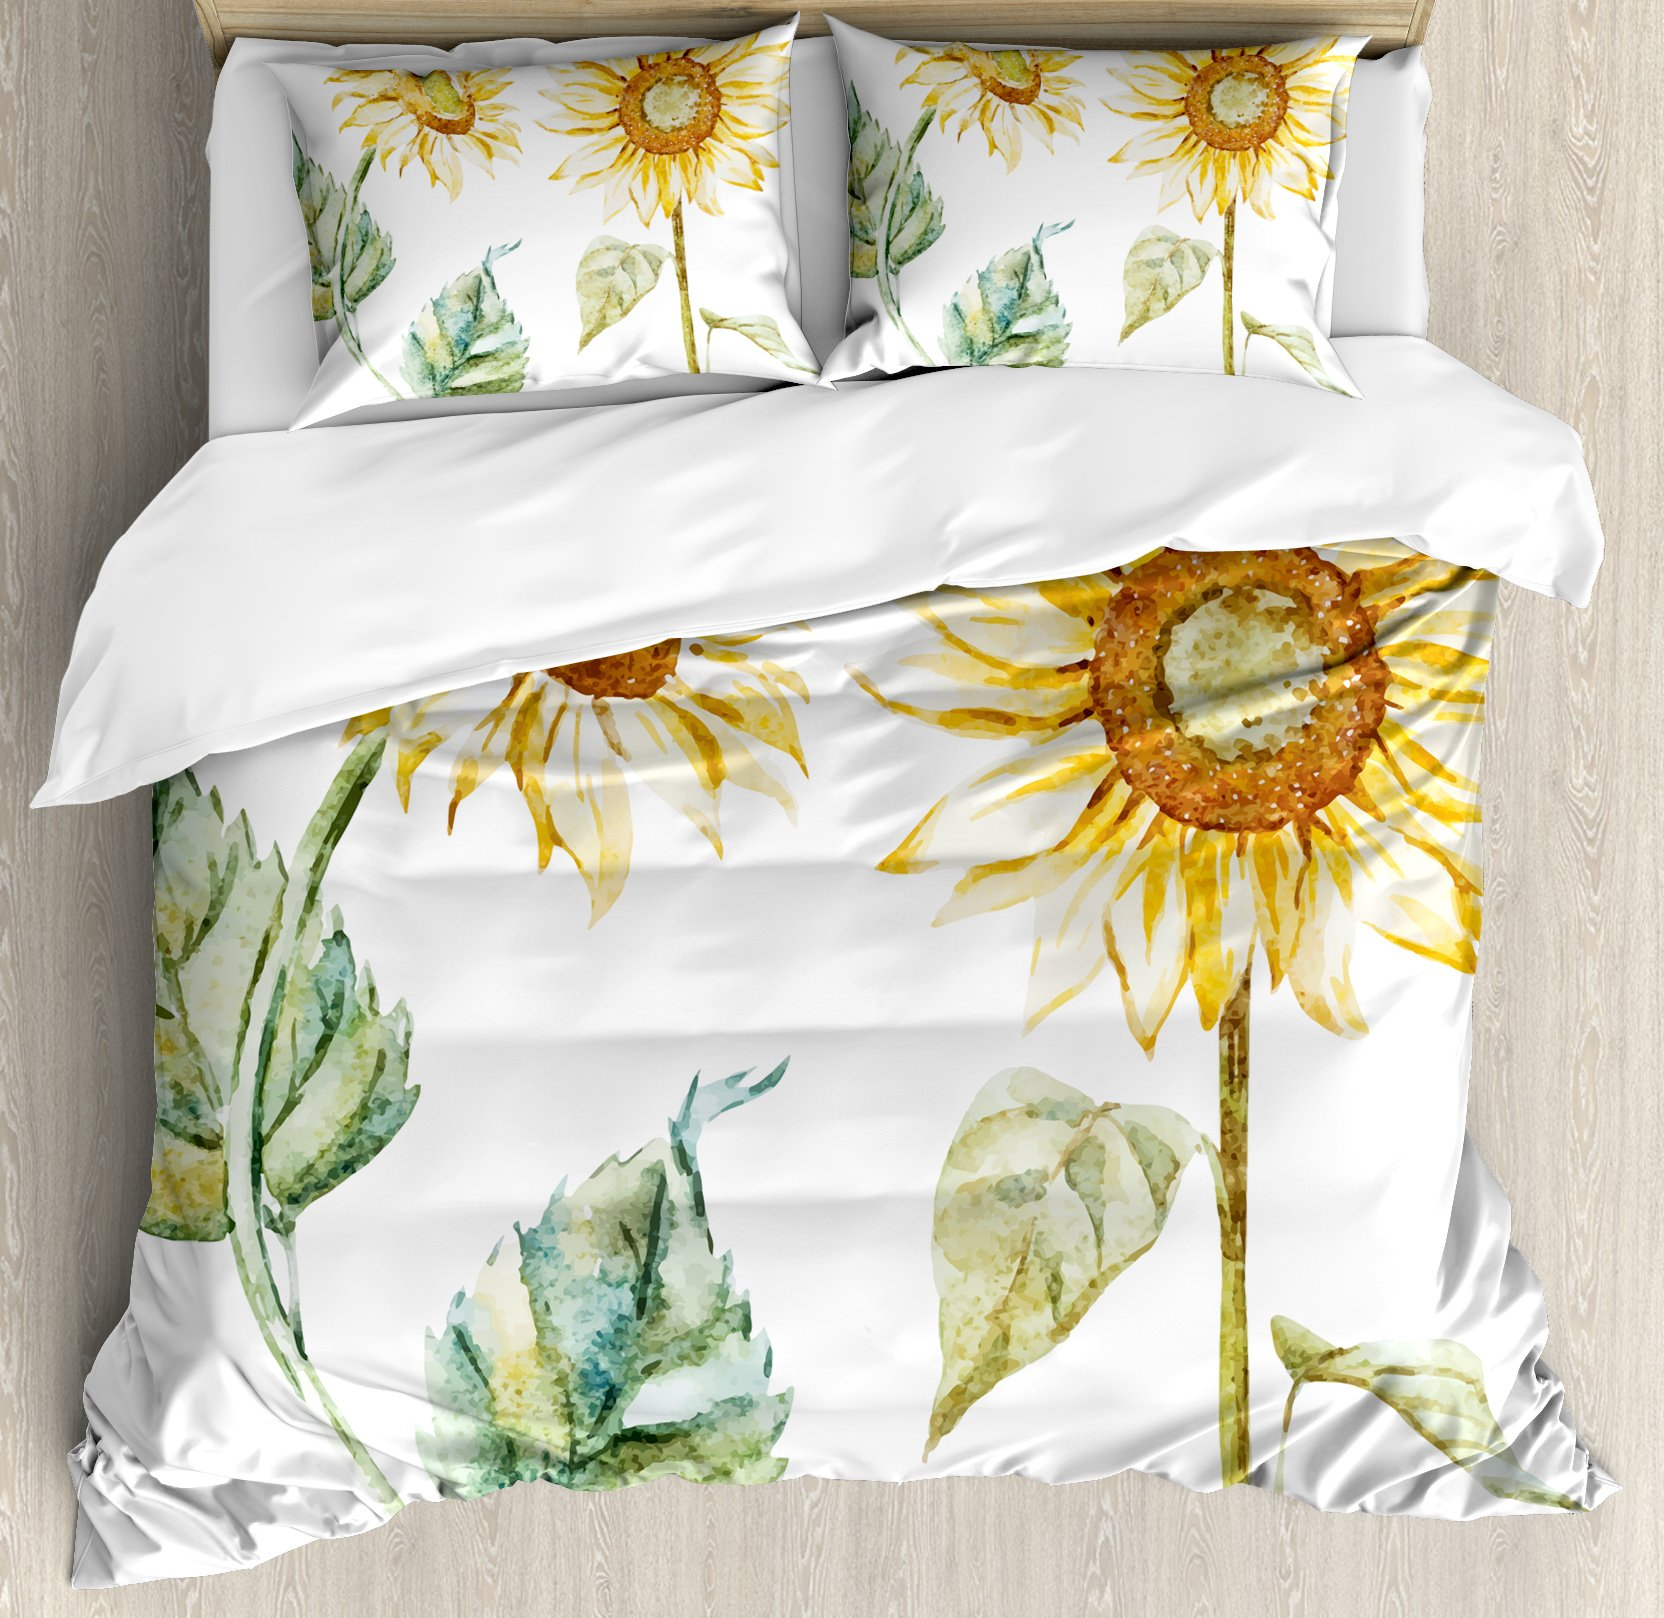 Ambesonne Watercolor Duvet Cover Set Queen Size, Alluring Sunflowers Summer Inspired Design Agriculture, Decorative 3 Piece Bedding Set with 2 Pillow Shams, Earth Yellow Pale Yellow Fern Green